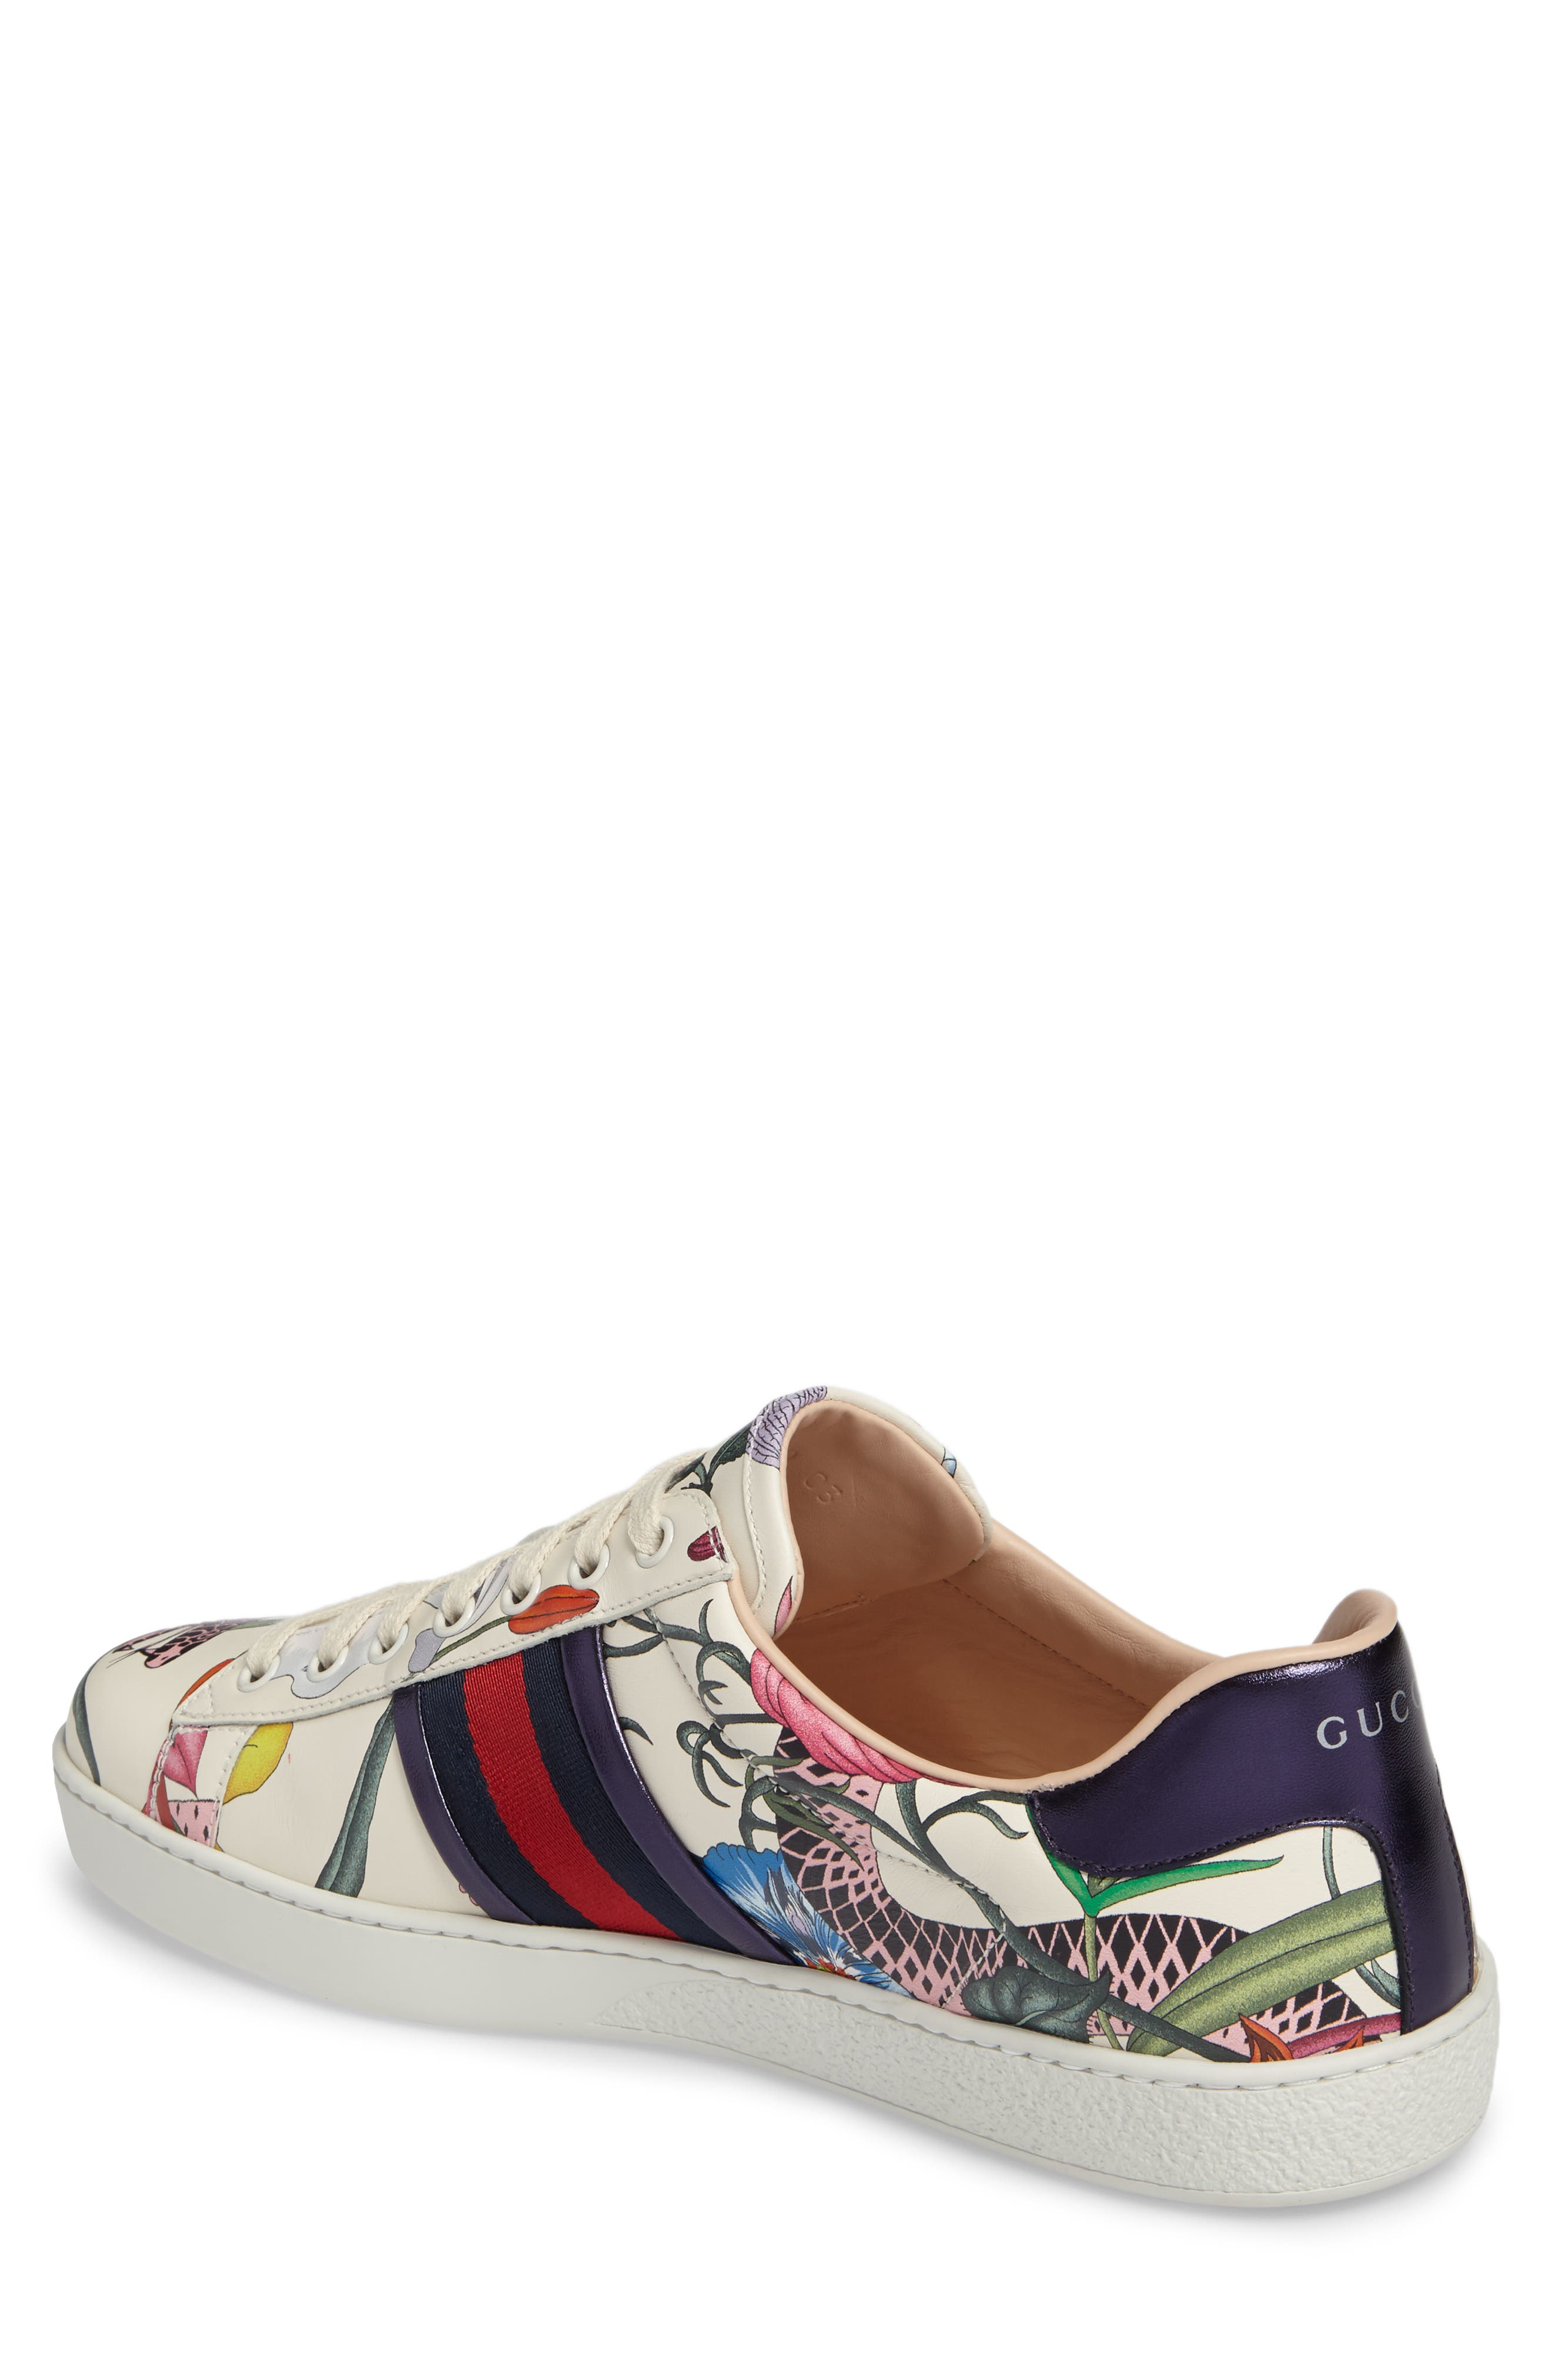 Alternate Image 2  - Gucci New Ace Floral Dino Sneaker (Men)